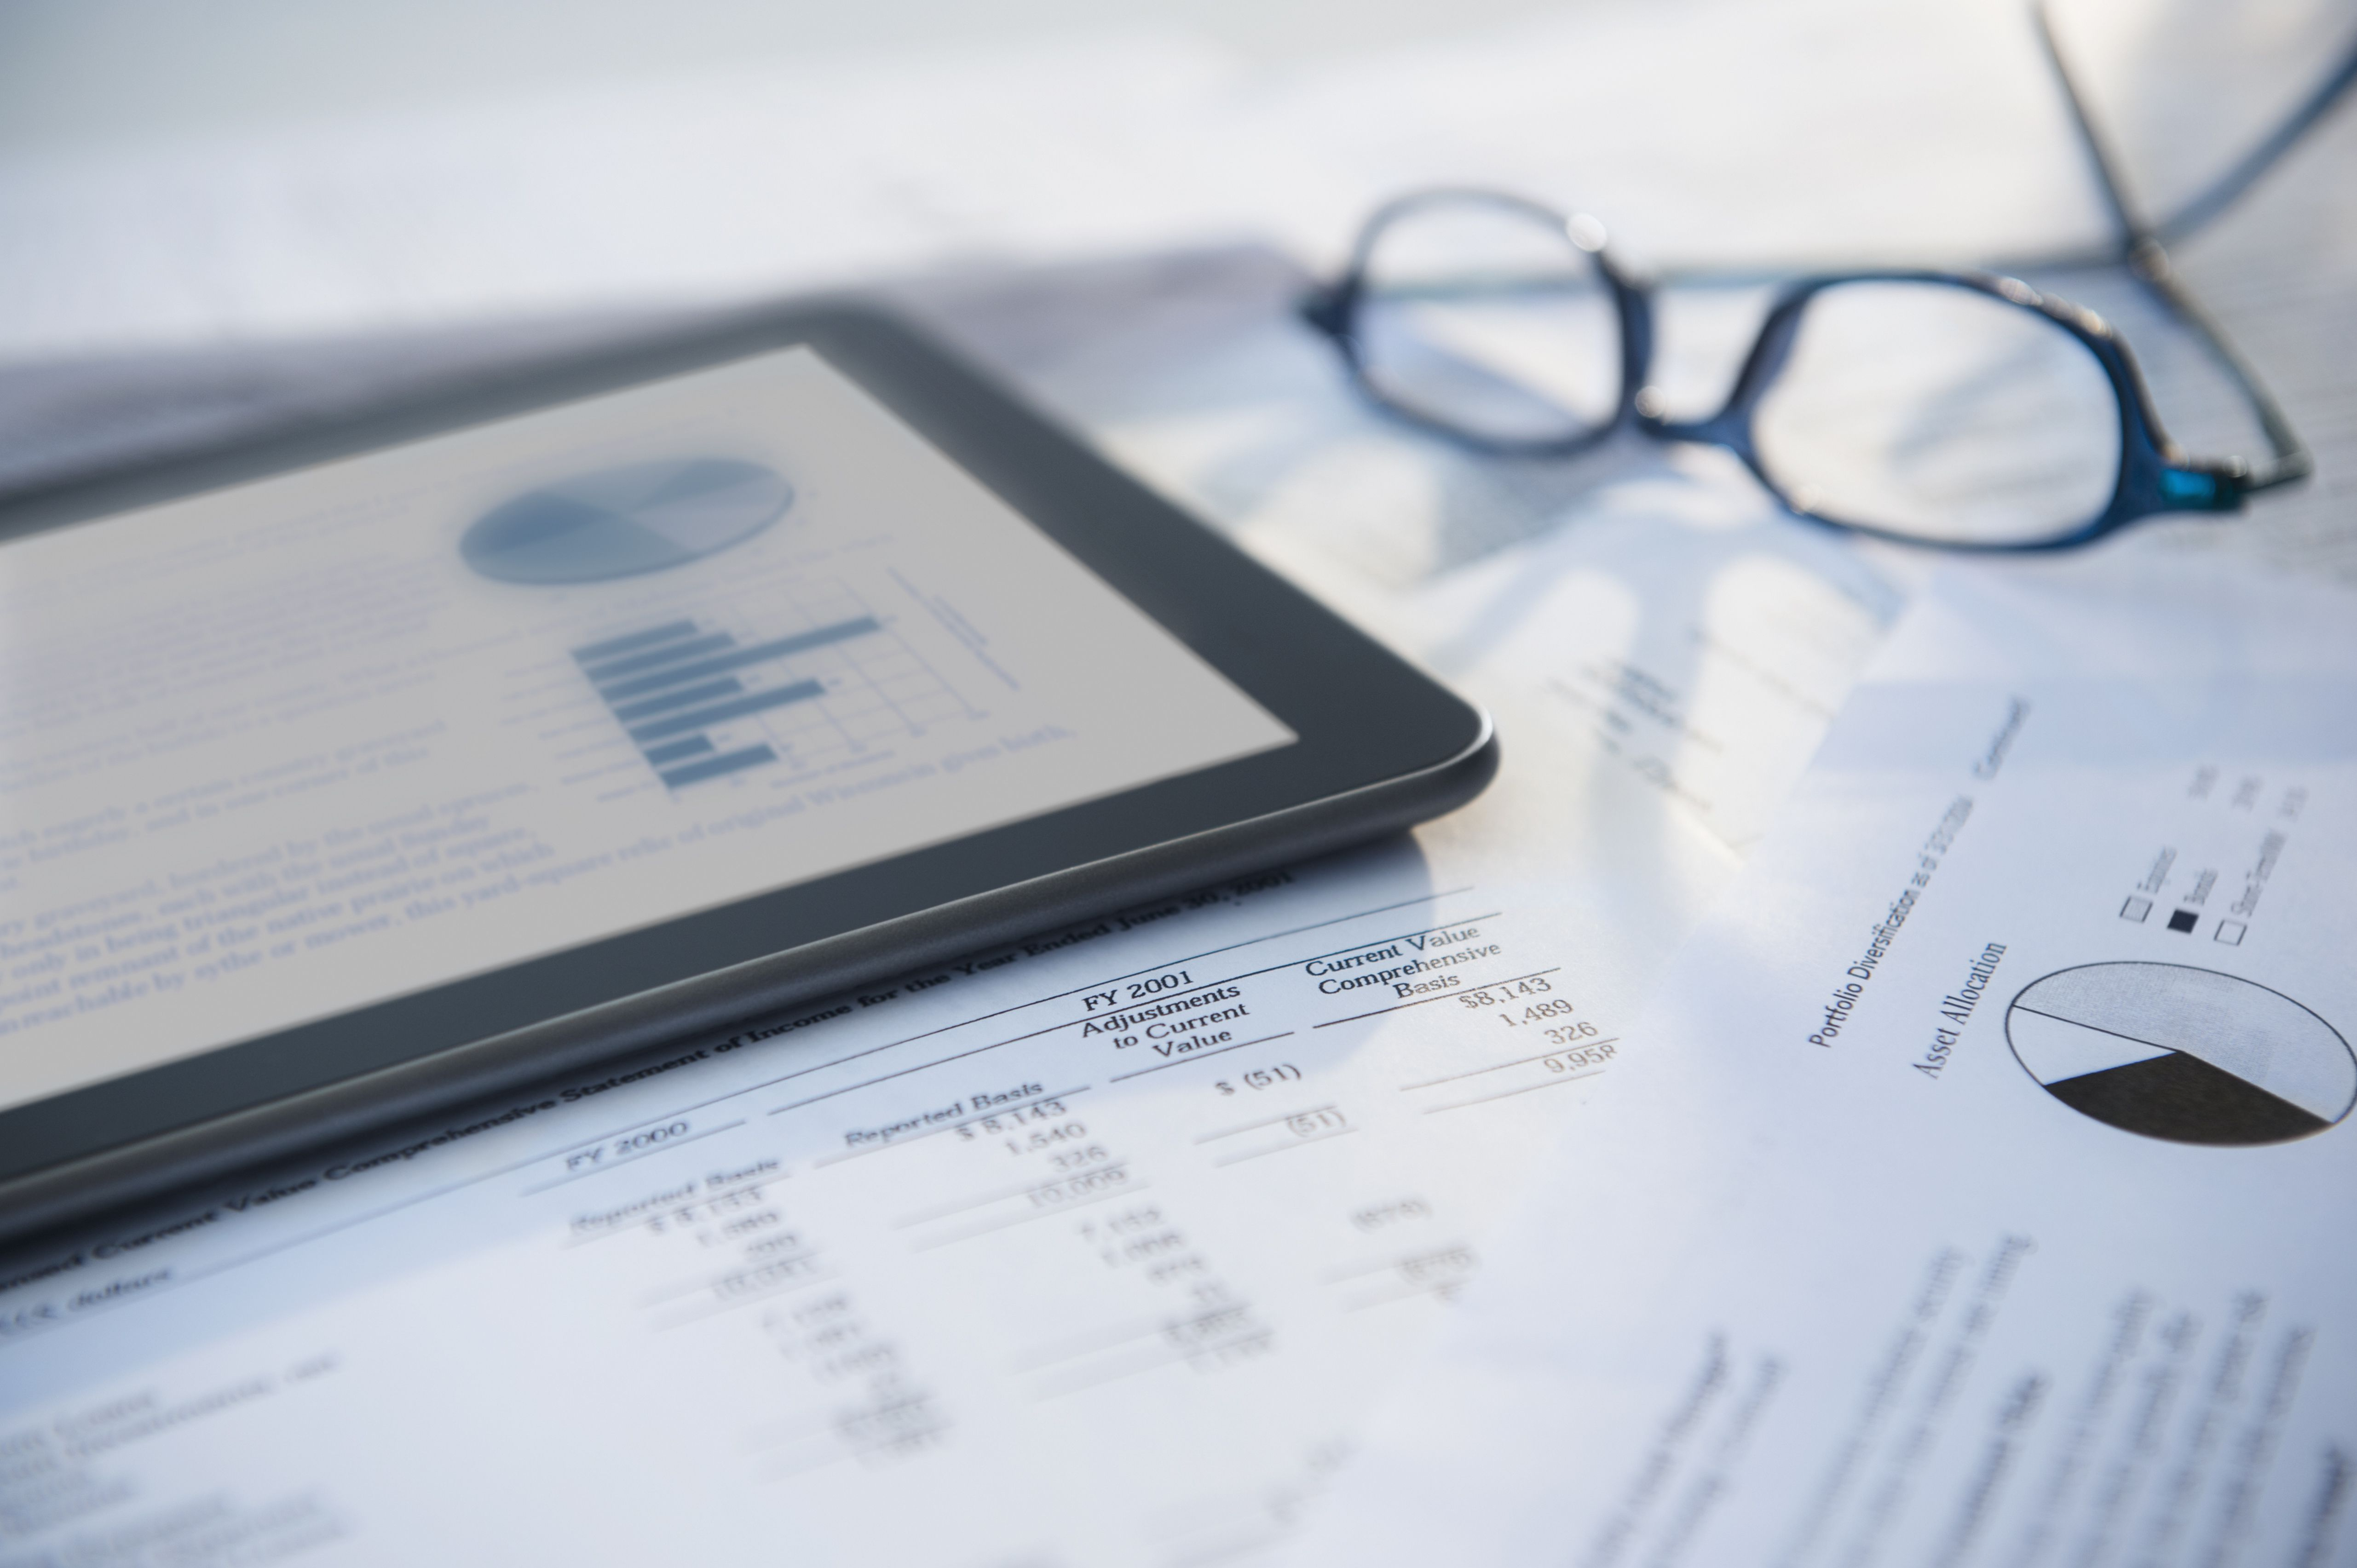 Should I Go with an ETF or a Mutual Fund?